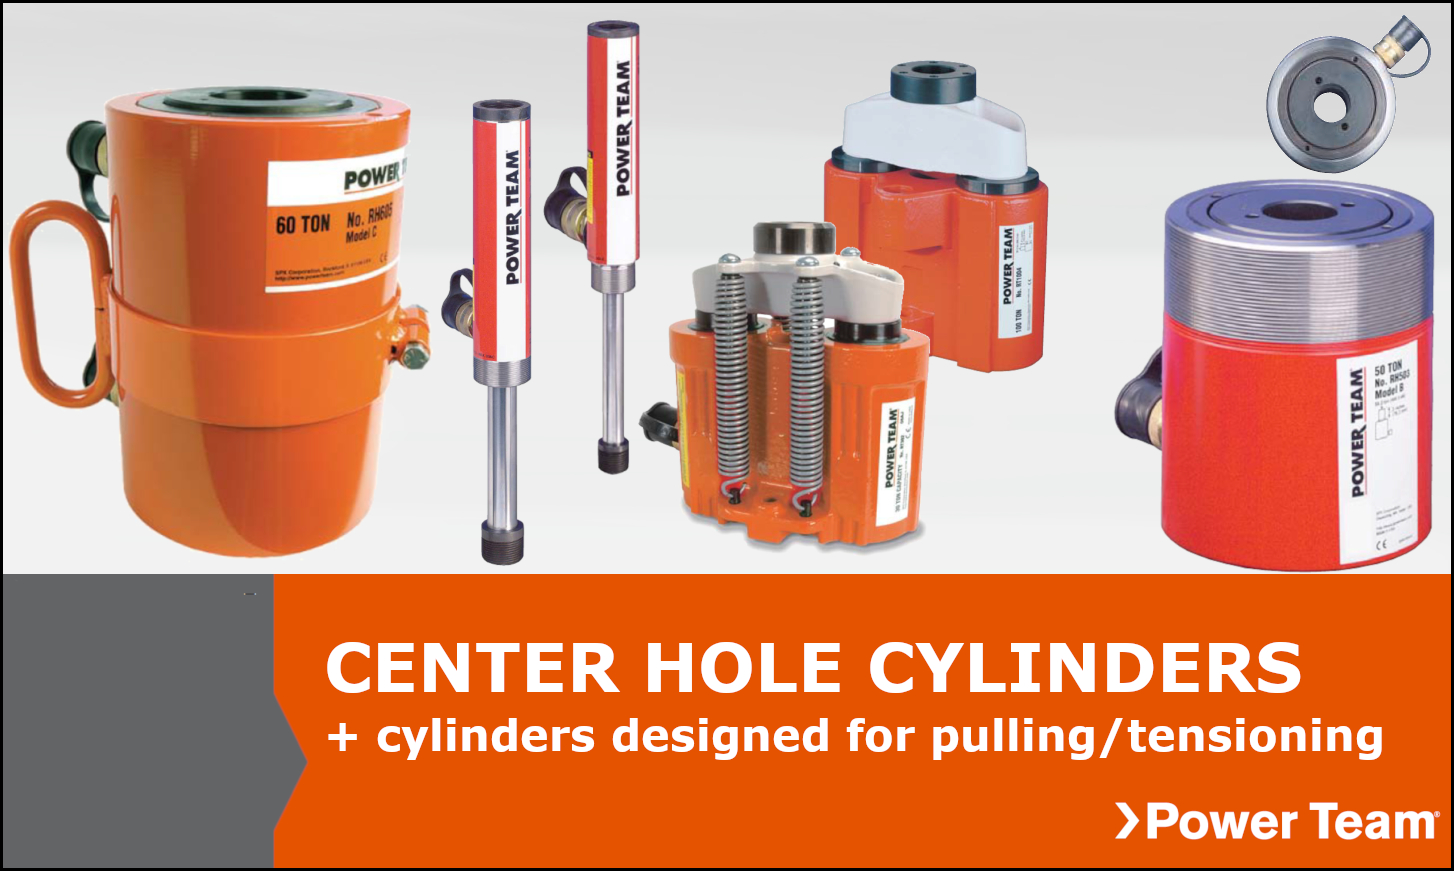 Center Hole Power Team Cylinders